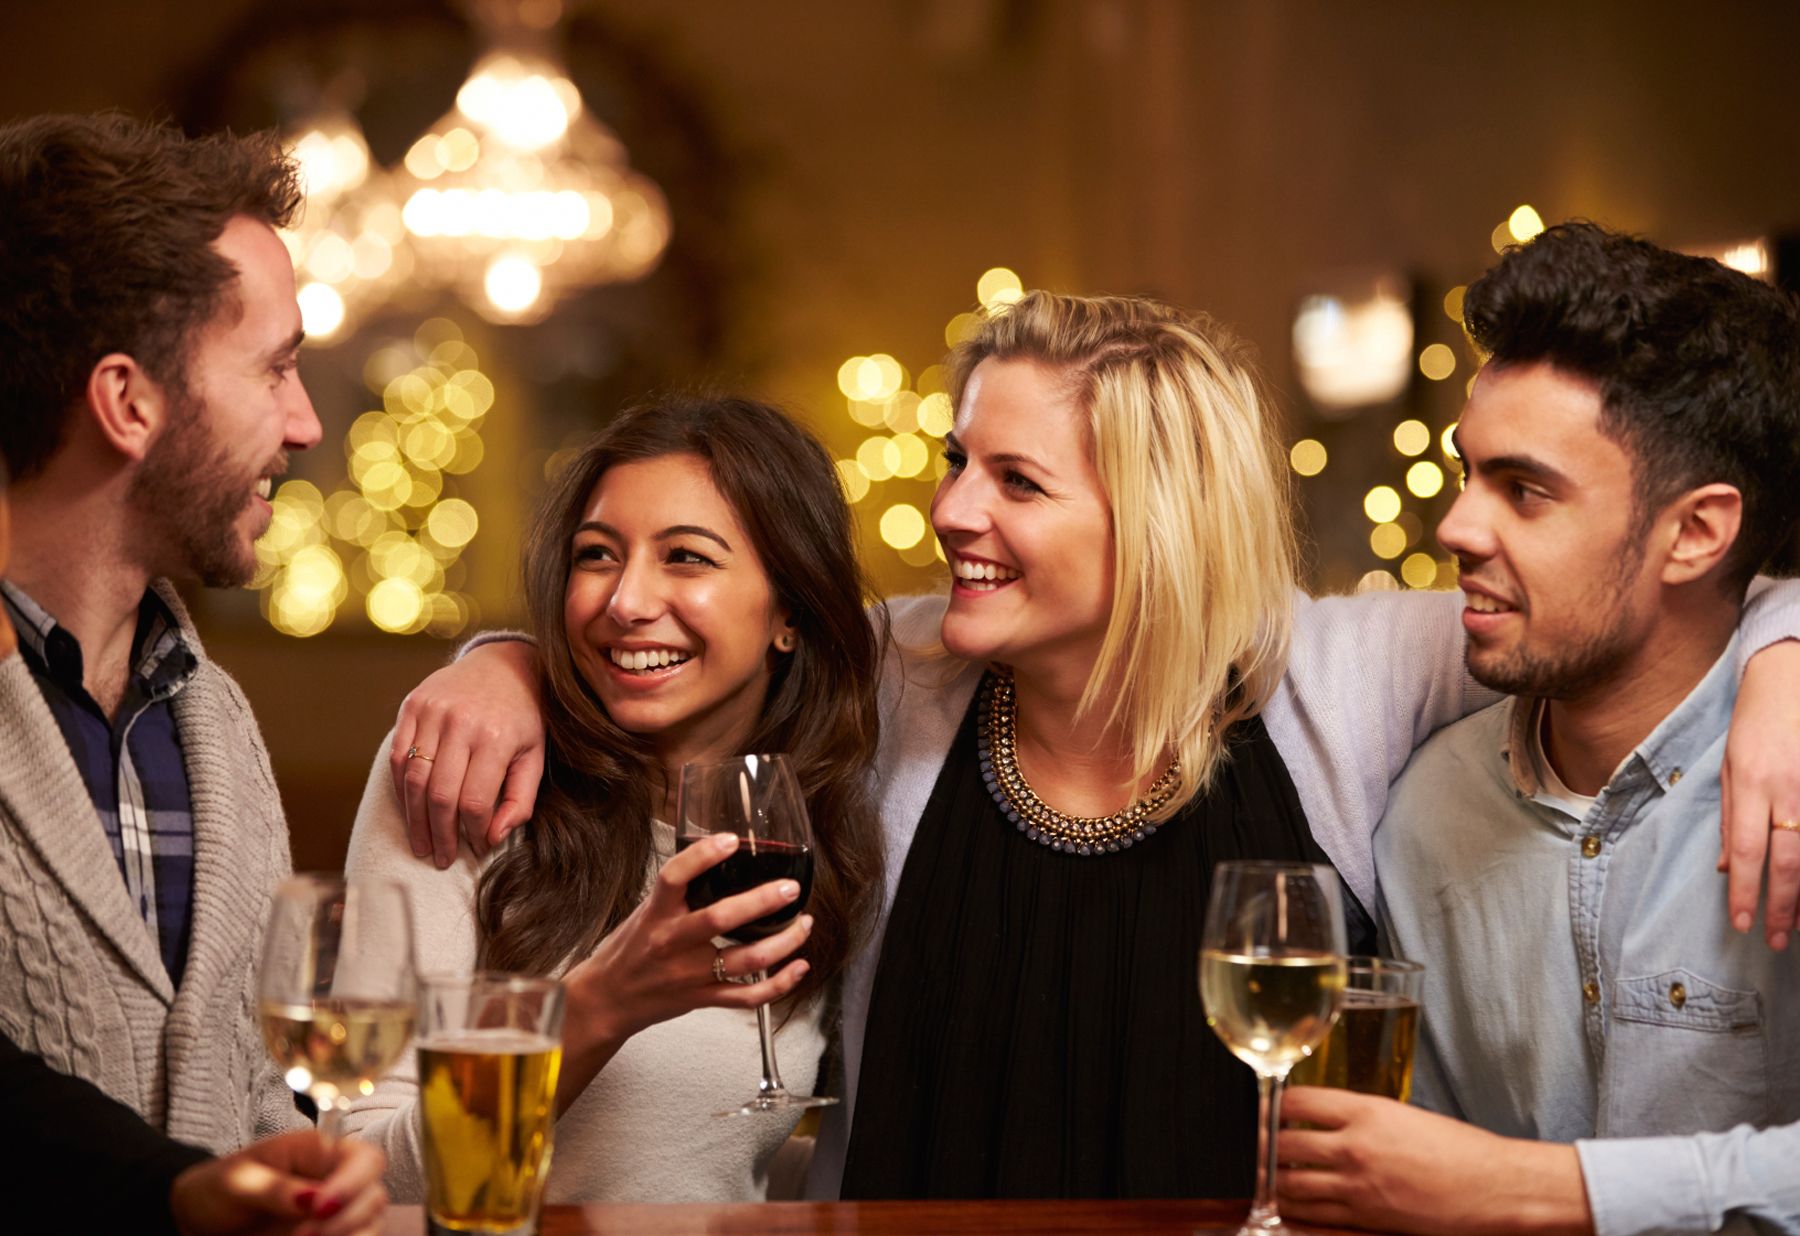 Useful English Conversation Phrases To Use at a Party | Pep